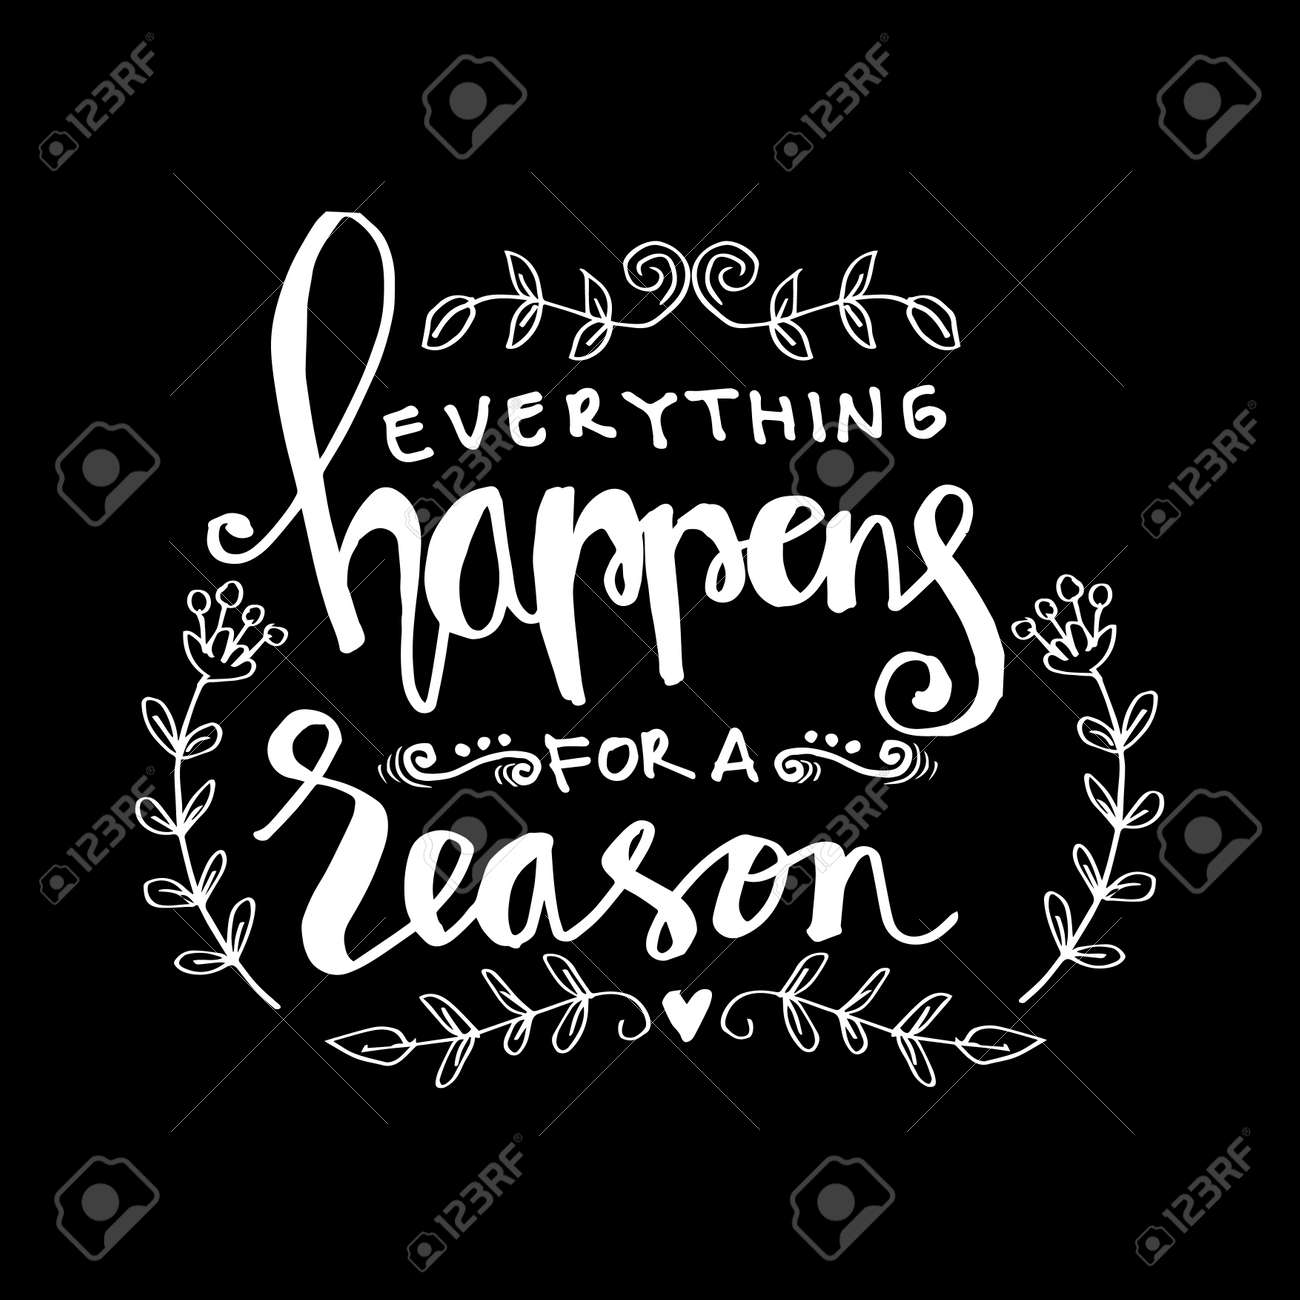 Everything Happens For A Reason Motivational Quote Royalty Free